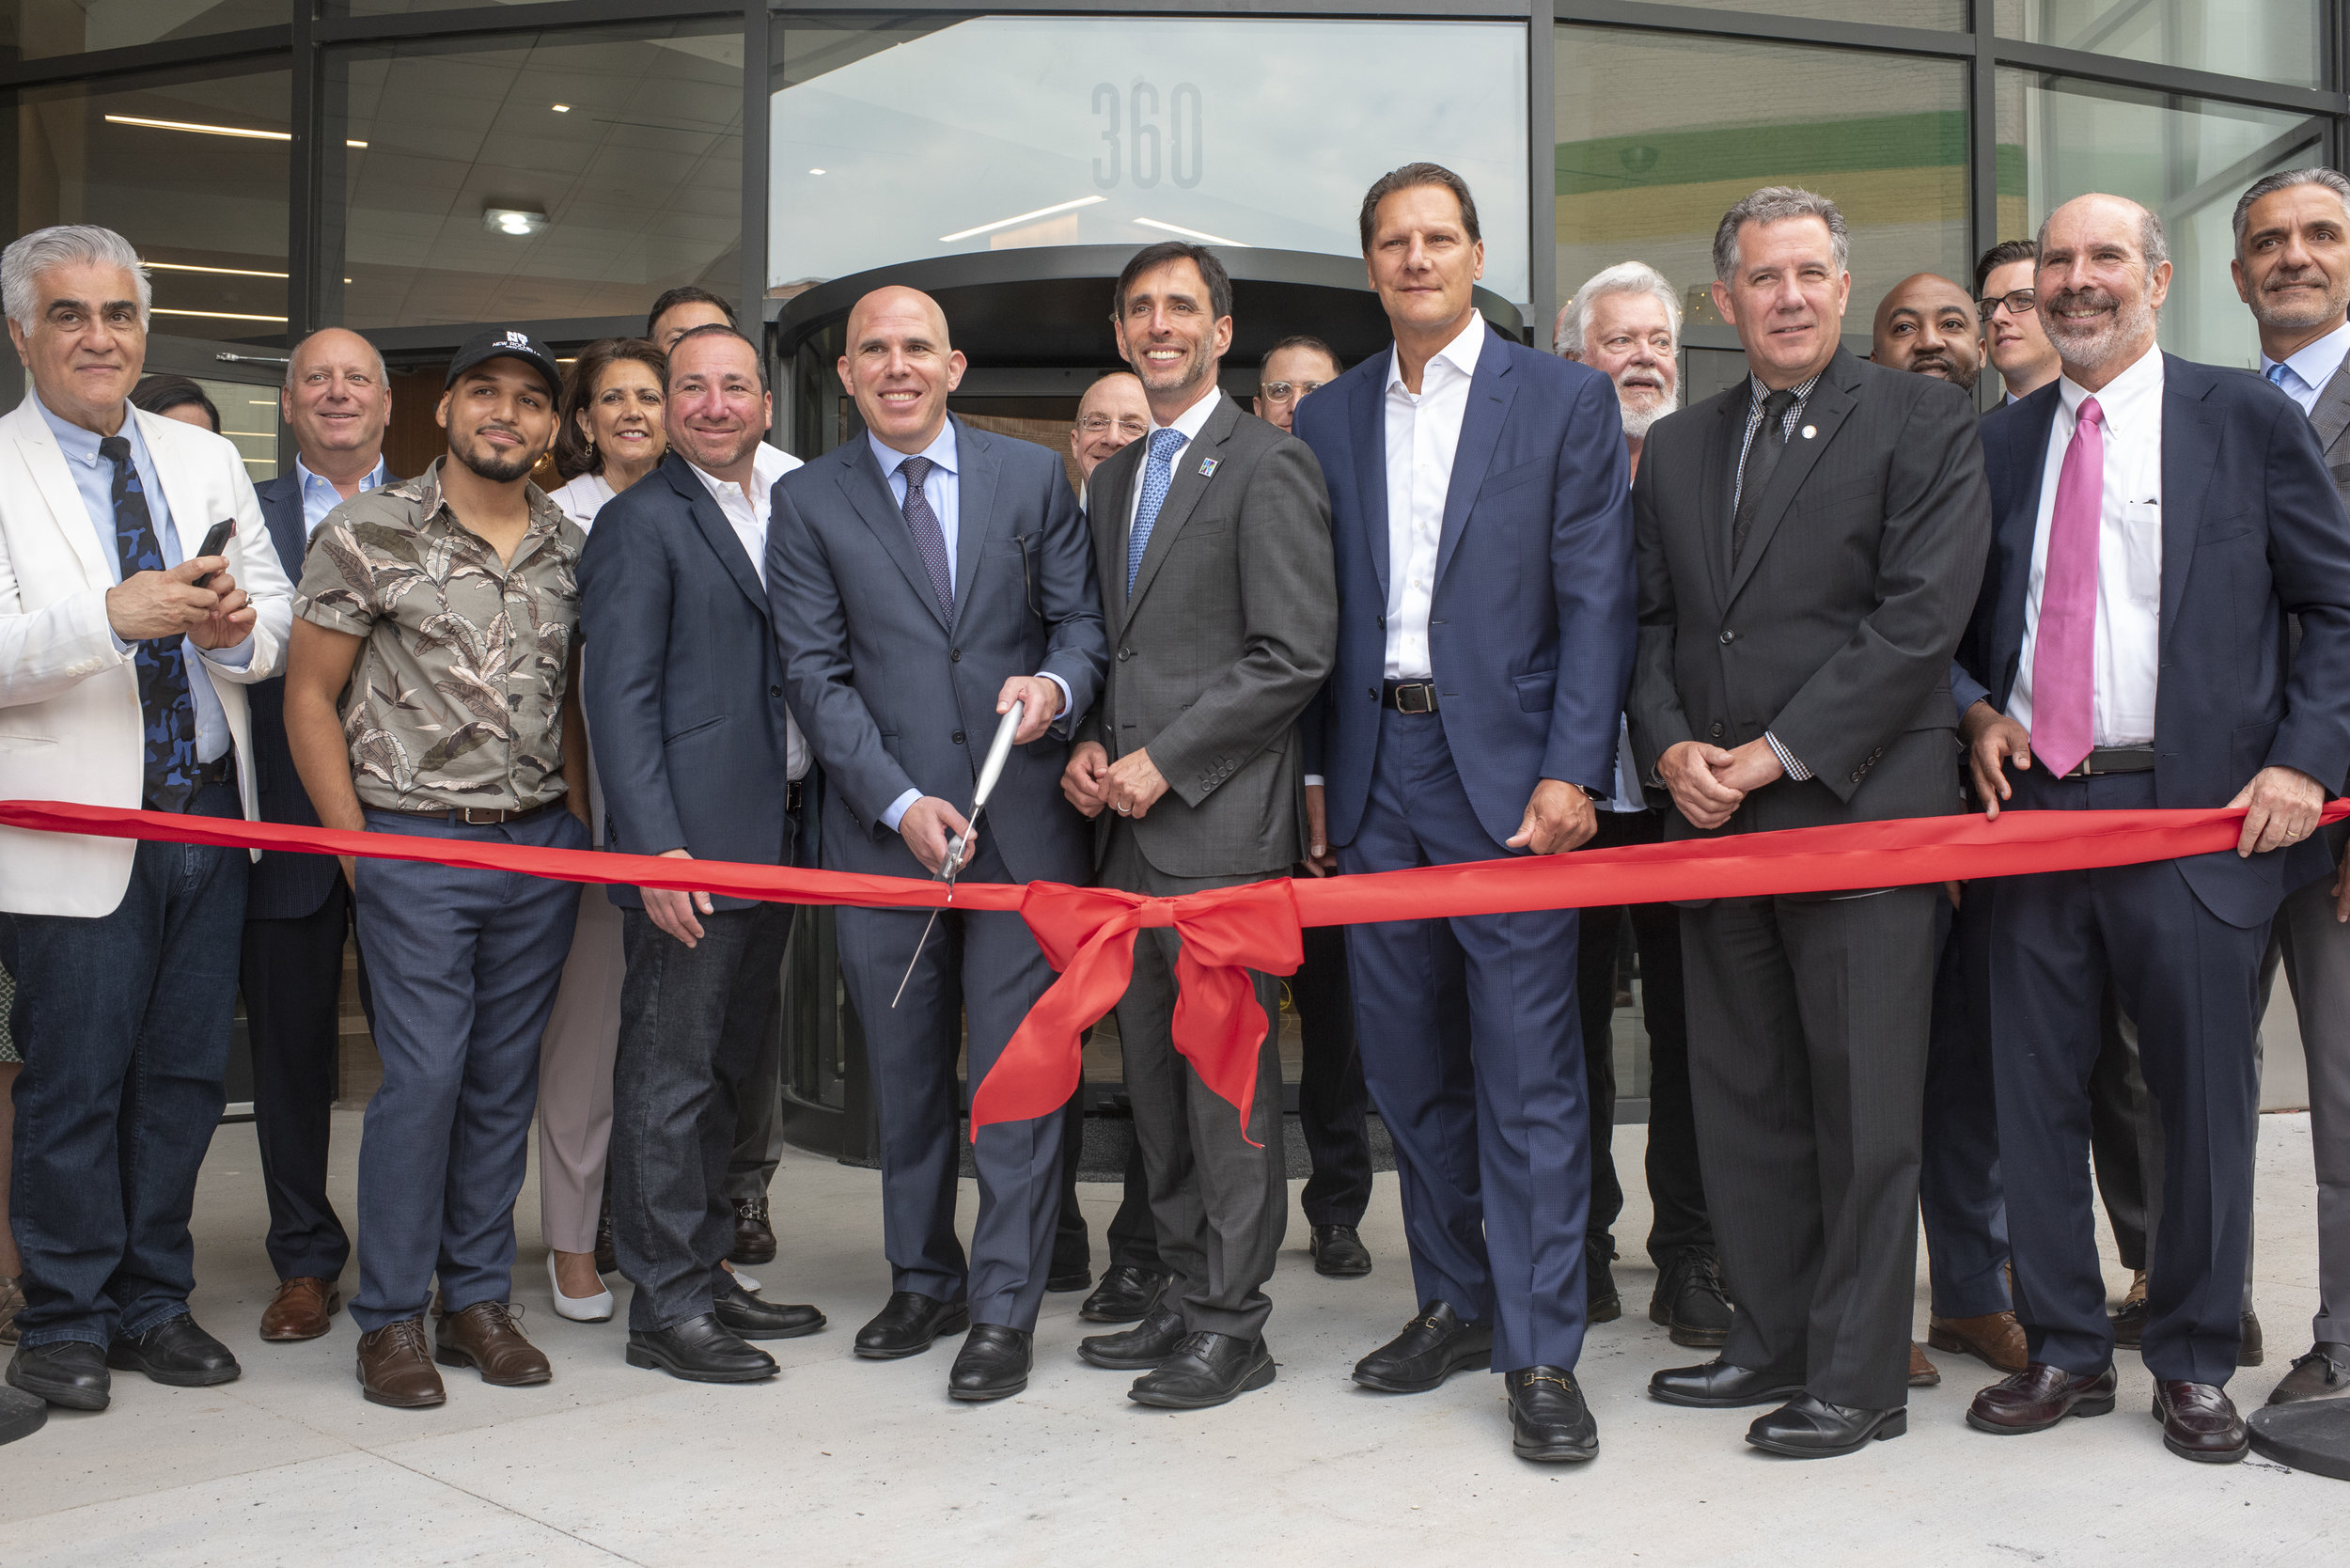 Scott Rechler, Mayor Bramson and Michael Maturo joined by VAEA, Daniel Martinez, City and RXR officials to cut ribbon.jpg